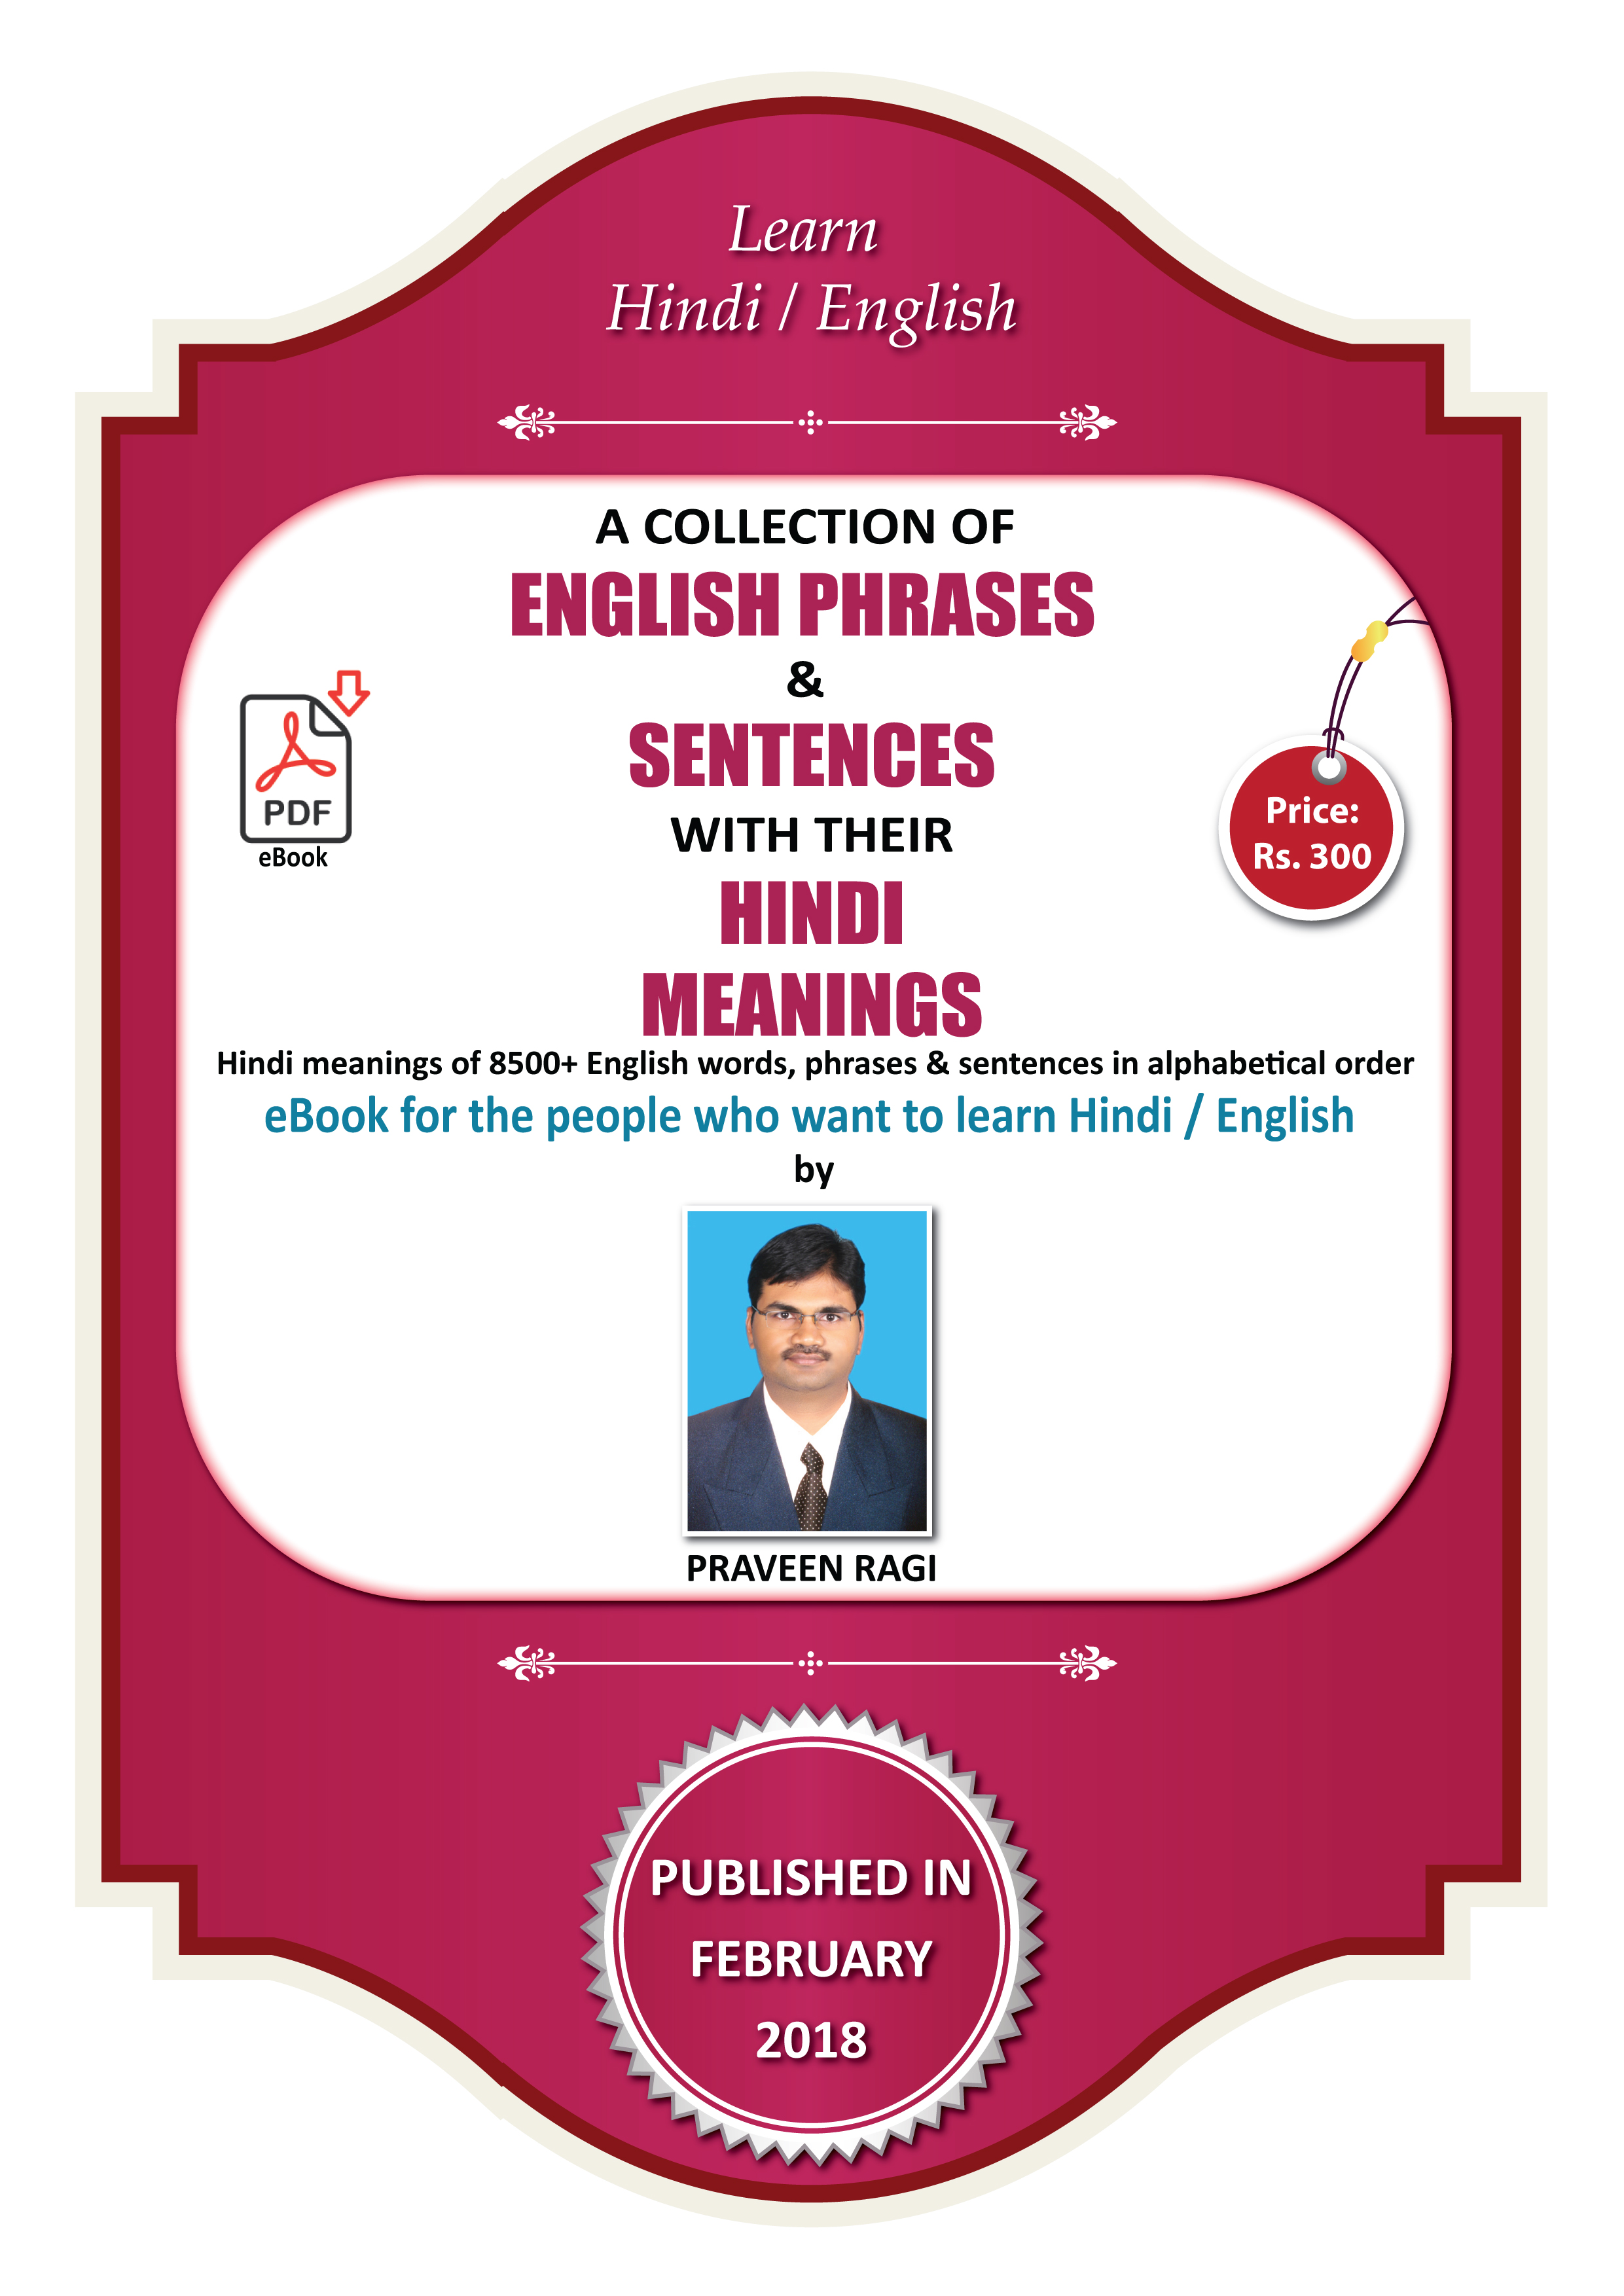 A COLLECTION OF ENGLISH PHRASES & SENTENCES WITH THEIR HINDI MEANINGS  (Learn Hindi / English) - BY PRAVEEN RAGI - eBook